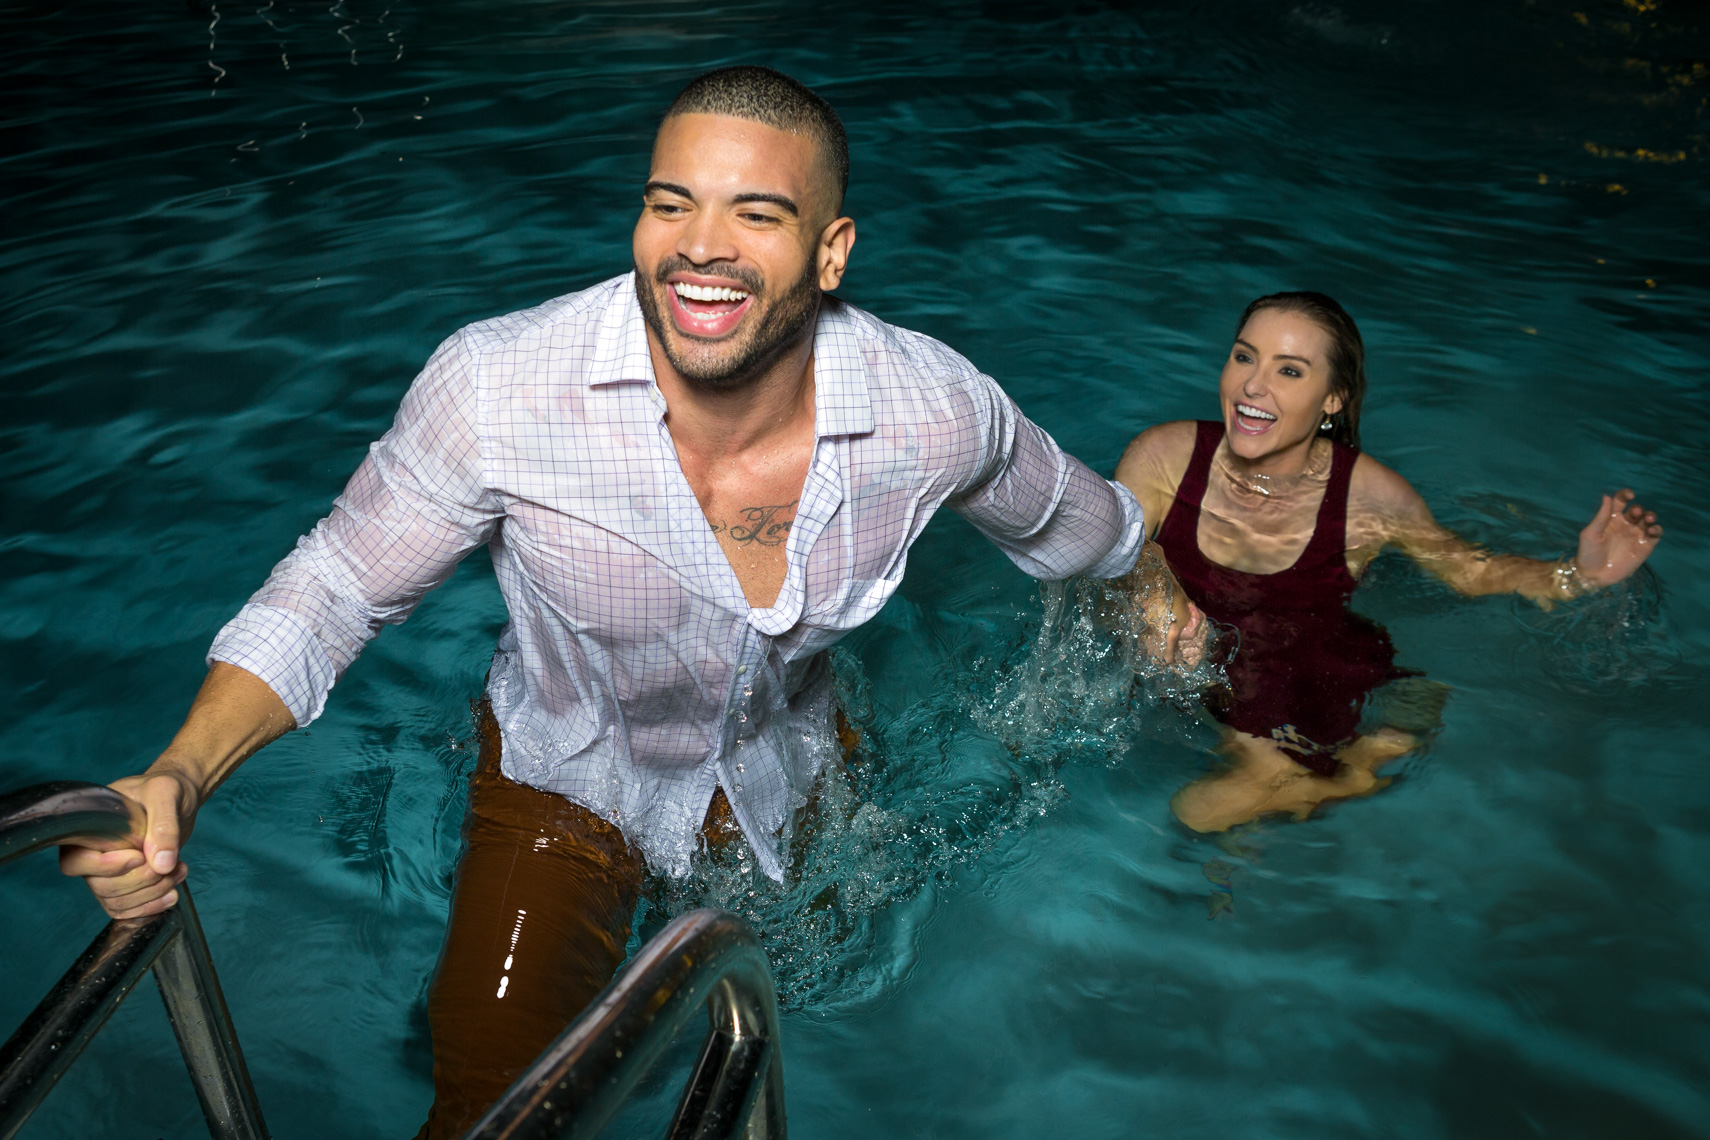 couple getting out of pool, fully dressed, shot by Steven P. Widoff